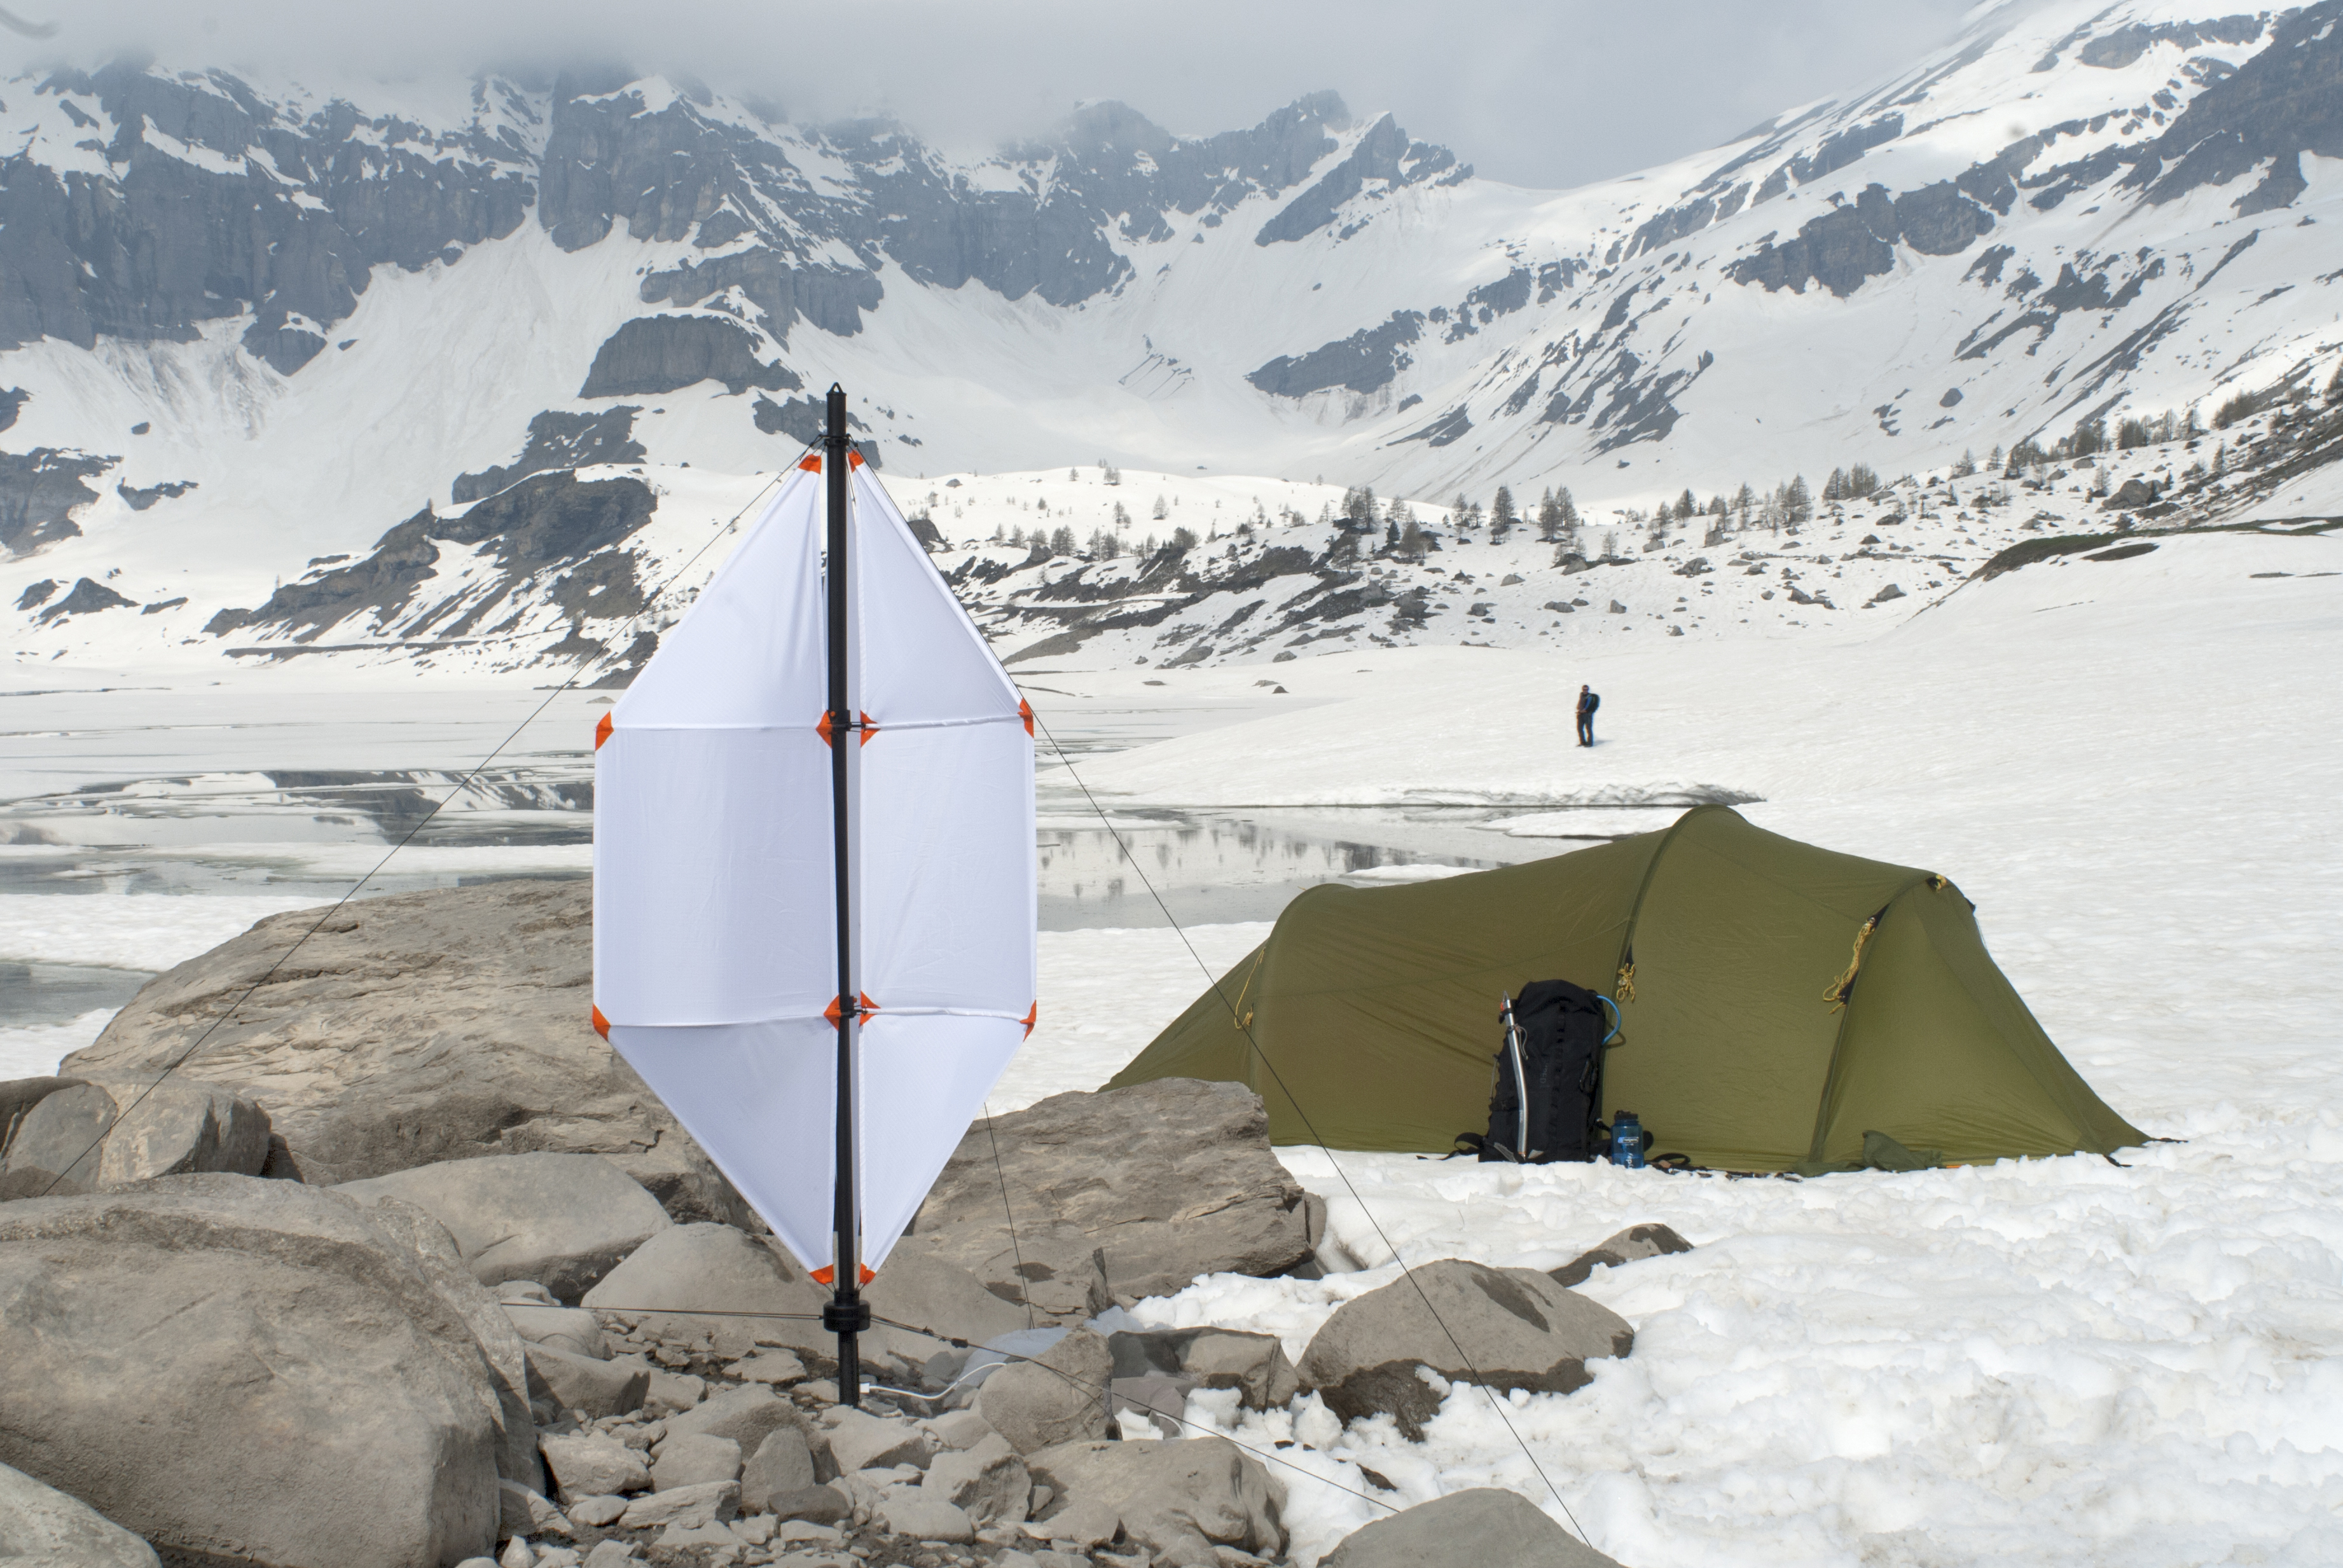 BSA Scouting Hacks How to charge your devices in remote locations